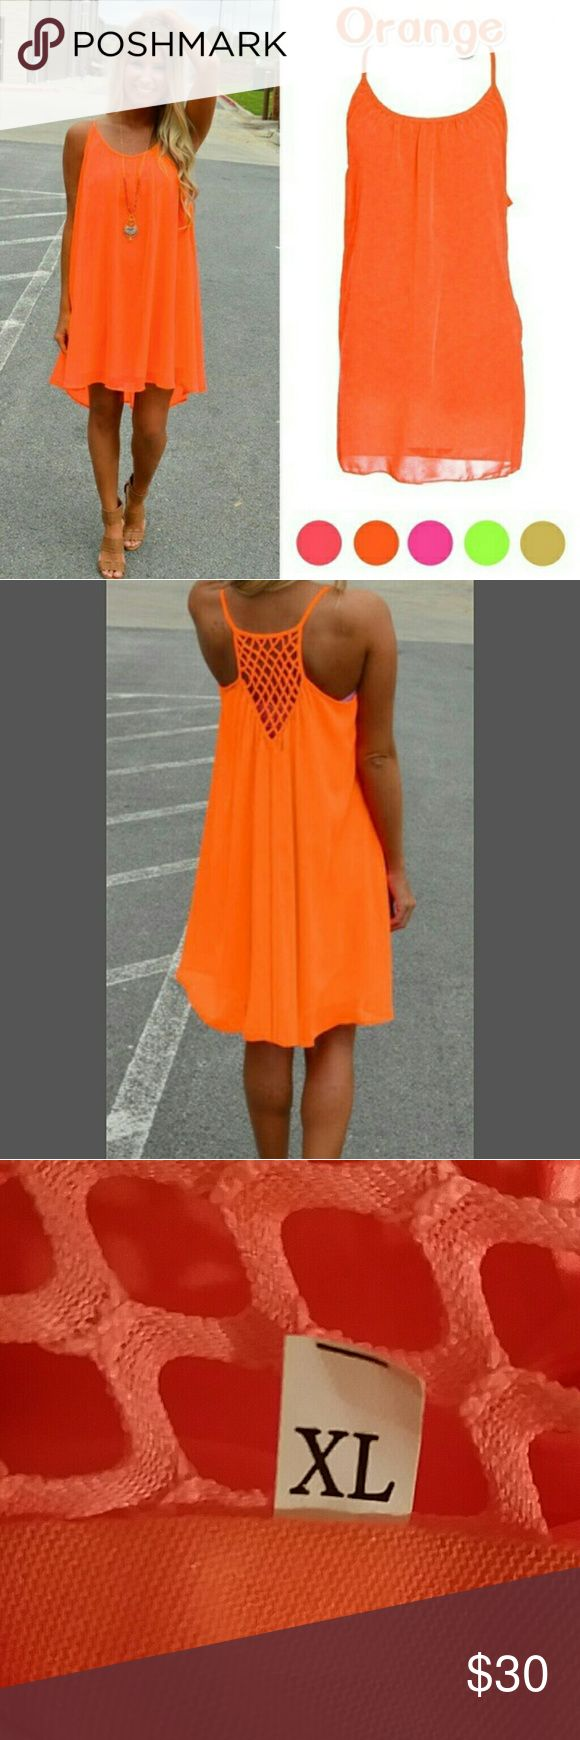 SEXY BEACH PARTY DRESS BRIGHT ORANGE BEACH DRESS  RACERBACK WITH LACE DETAIL  COMPLETELY LINED CHIFFON  AND POLYESTER  SIZE XL BUST 20.5 LAYING FLAT  LENGTH 40 INCHES FROM TOP OF SHOULDER  PERFECT FOR THIS TIME OF YEAR! Dresses Midi